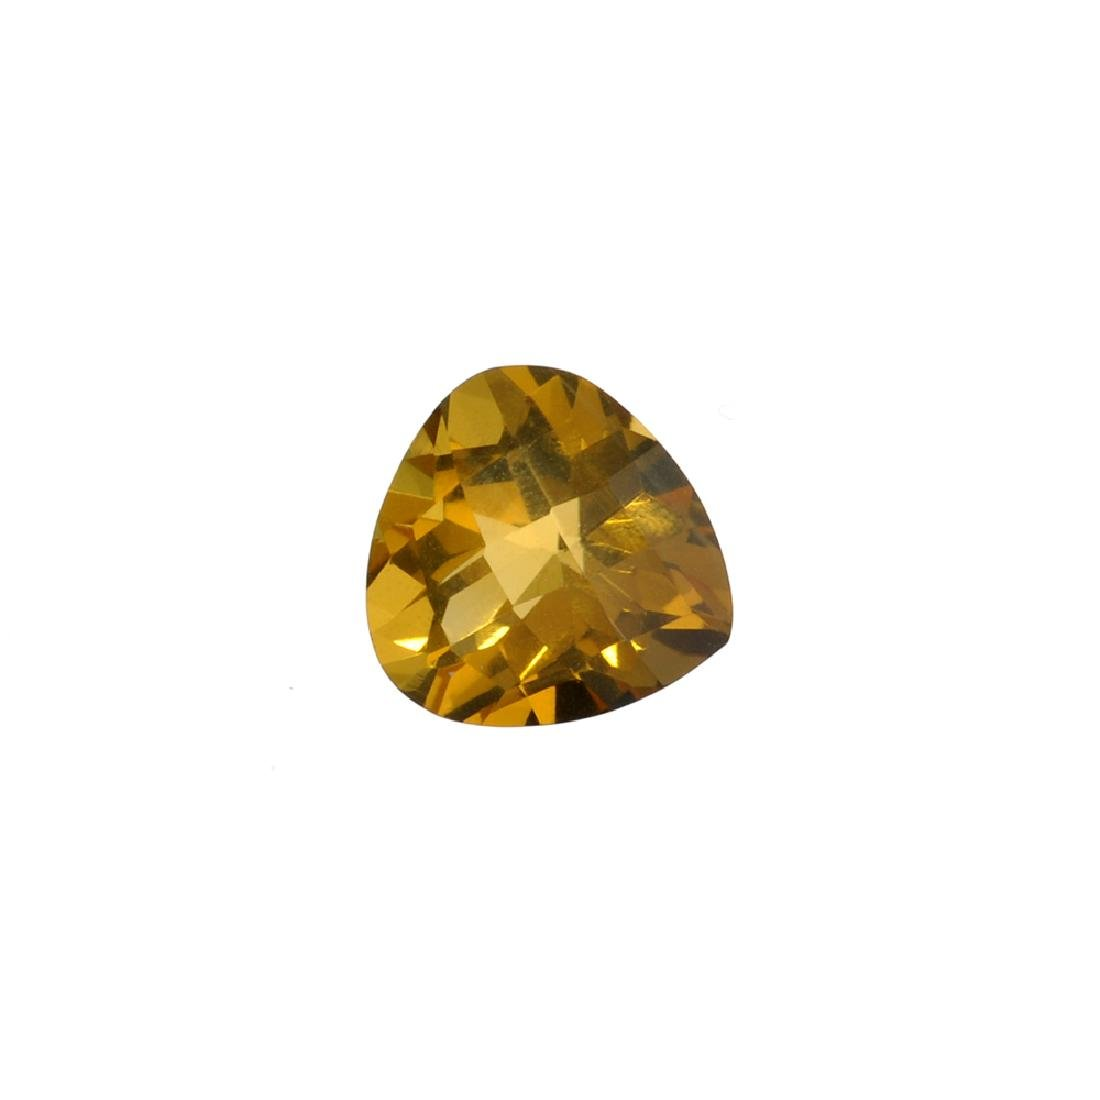 APP: 0.4k 7.56CT Pear Cut Citrine Gemstone